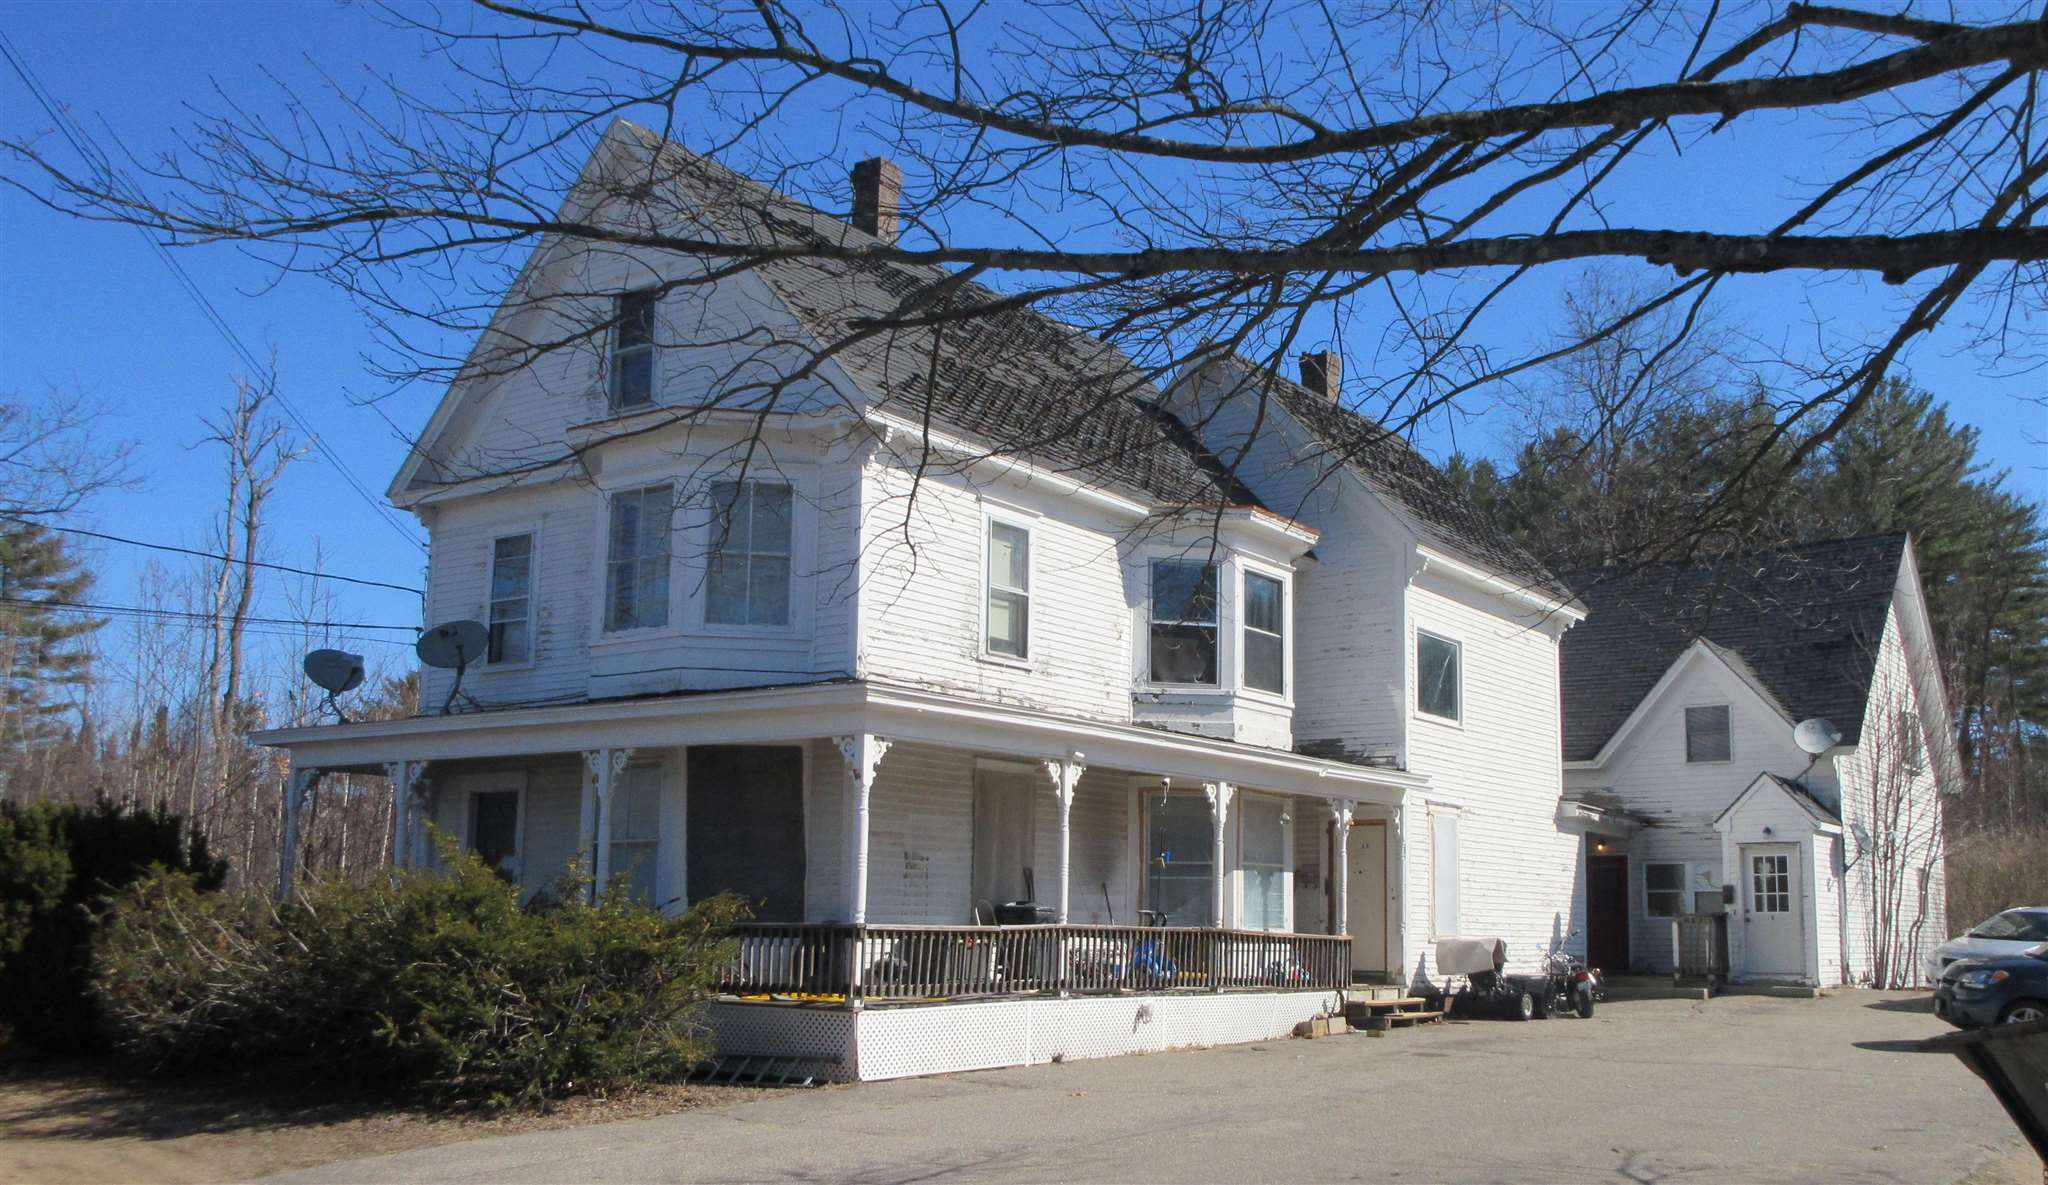 Photo of 132 Park Street Northfield NH 03276